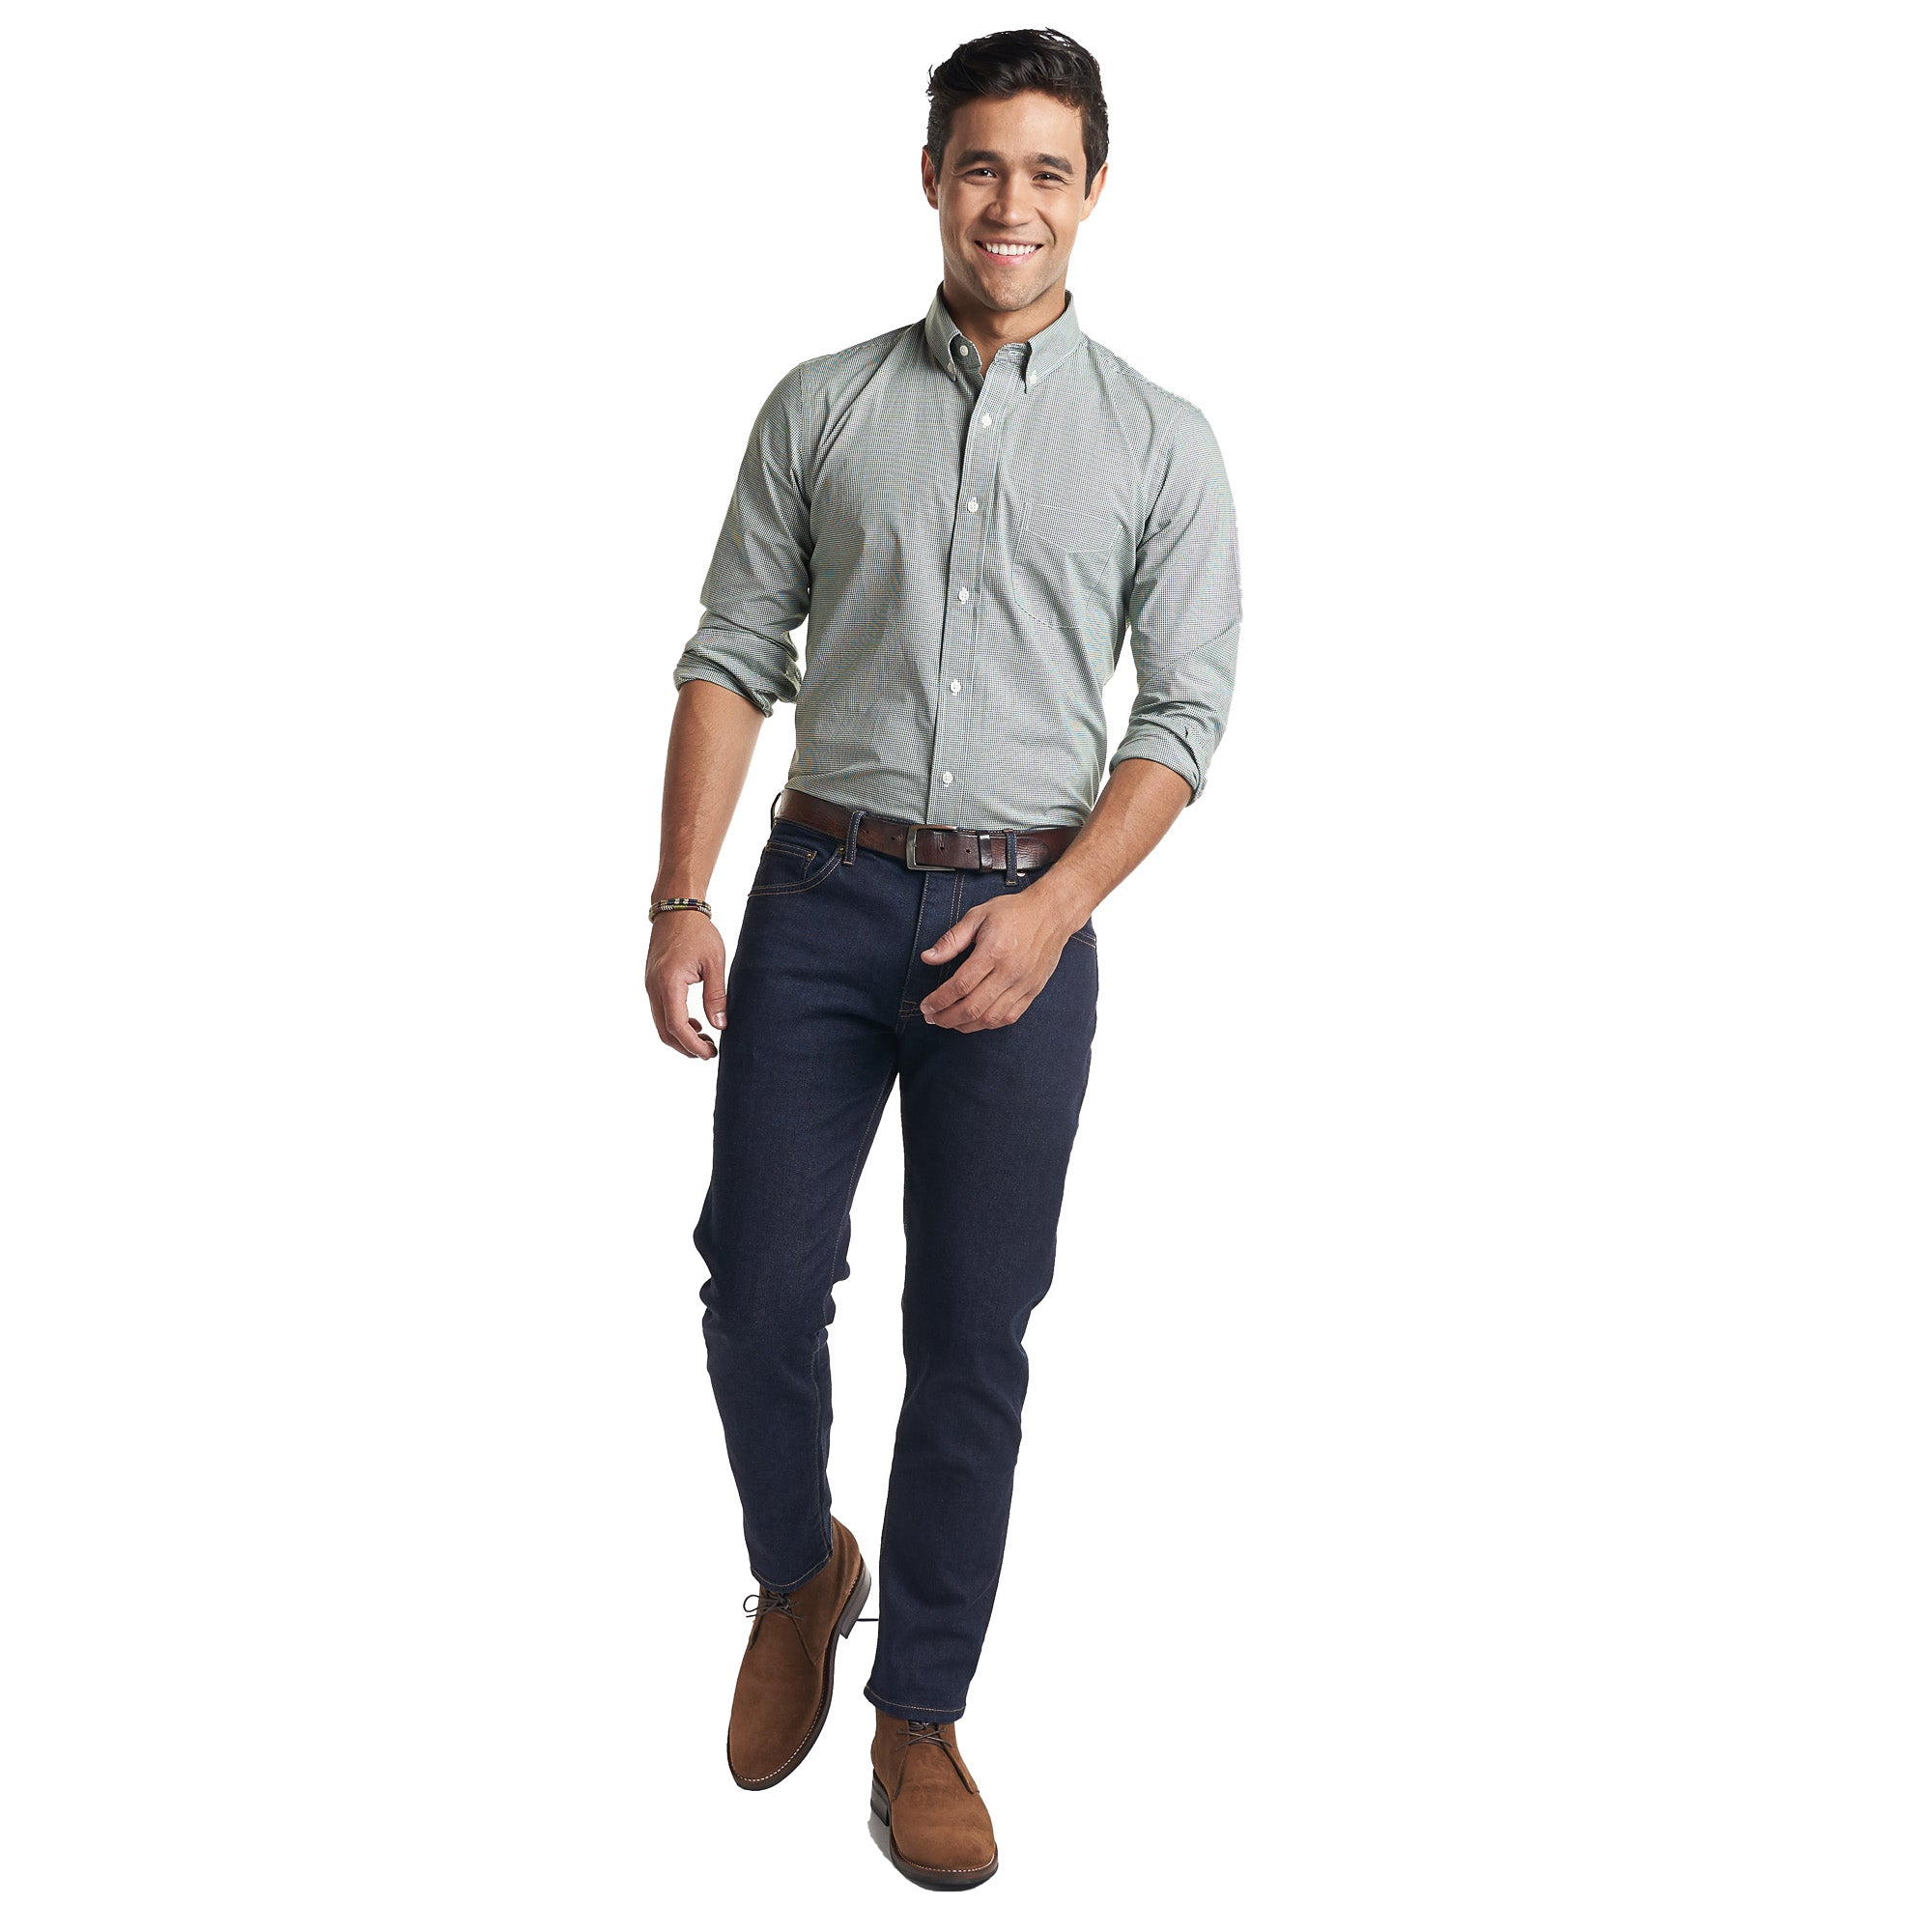 Everyday Shirt Standard Fit - Green Microcheck